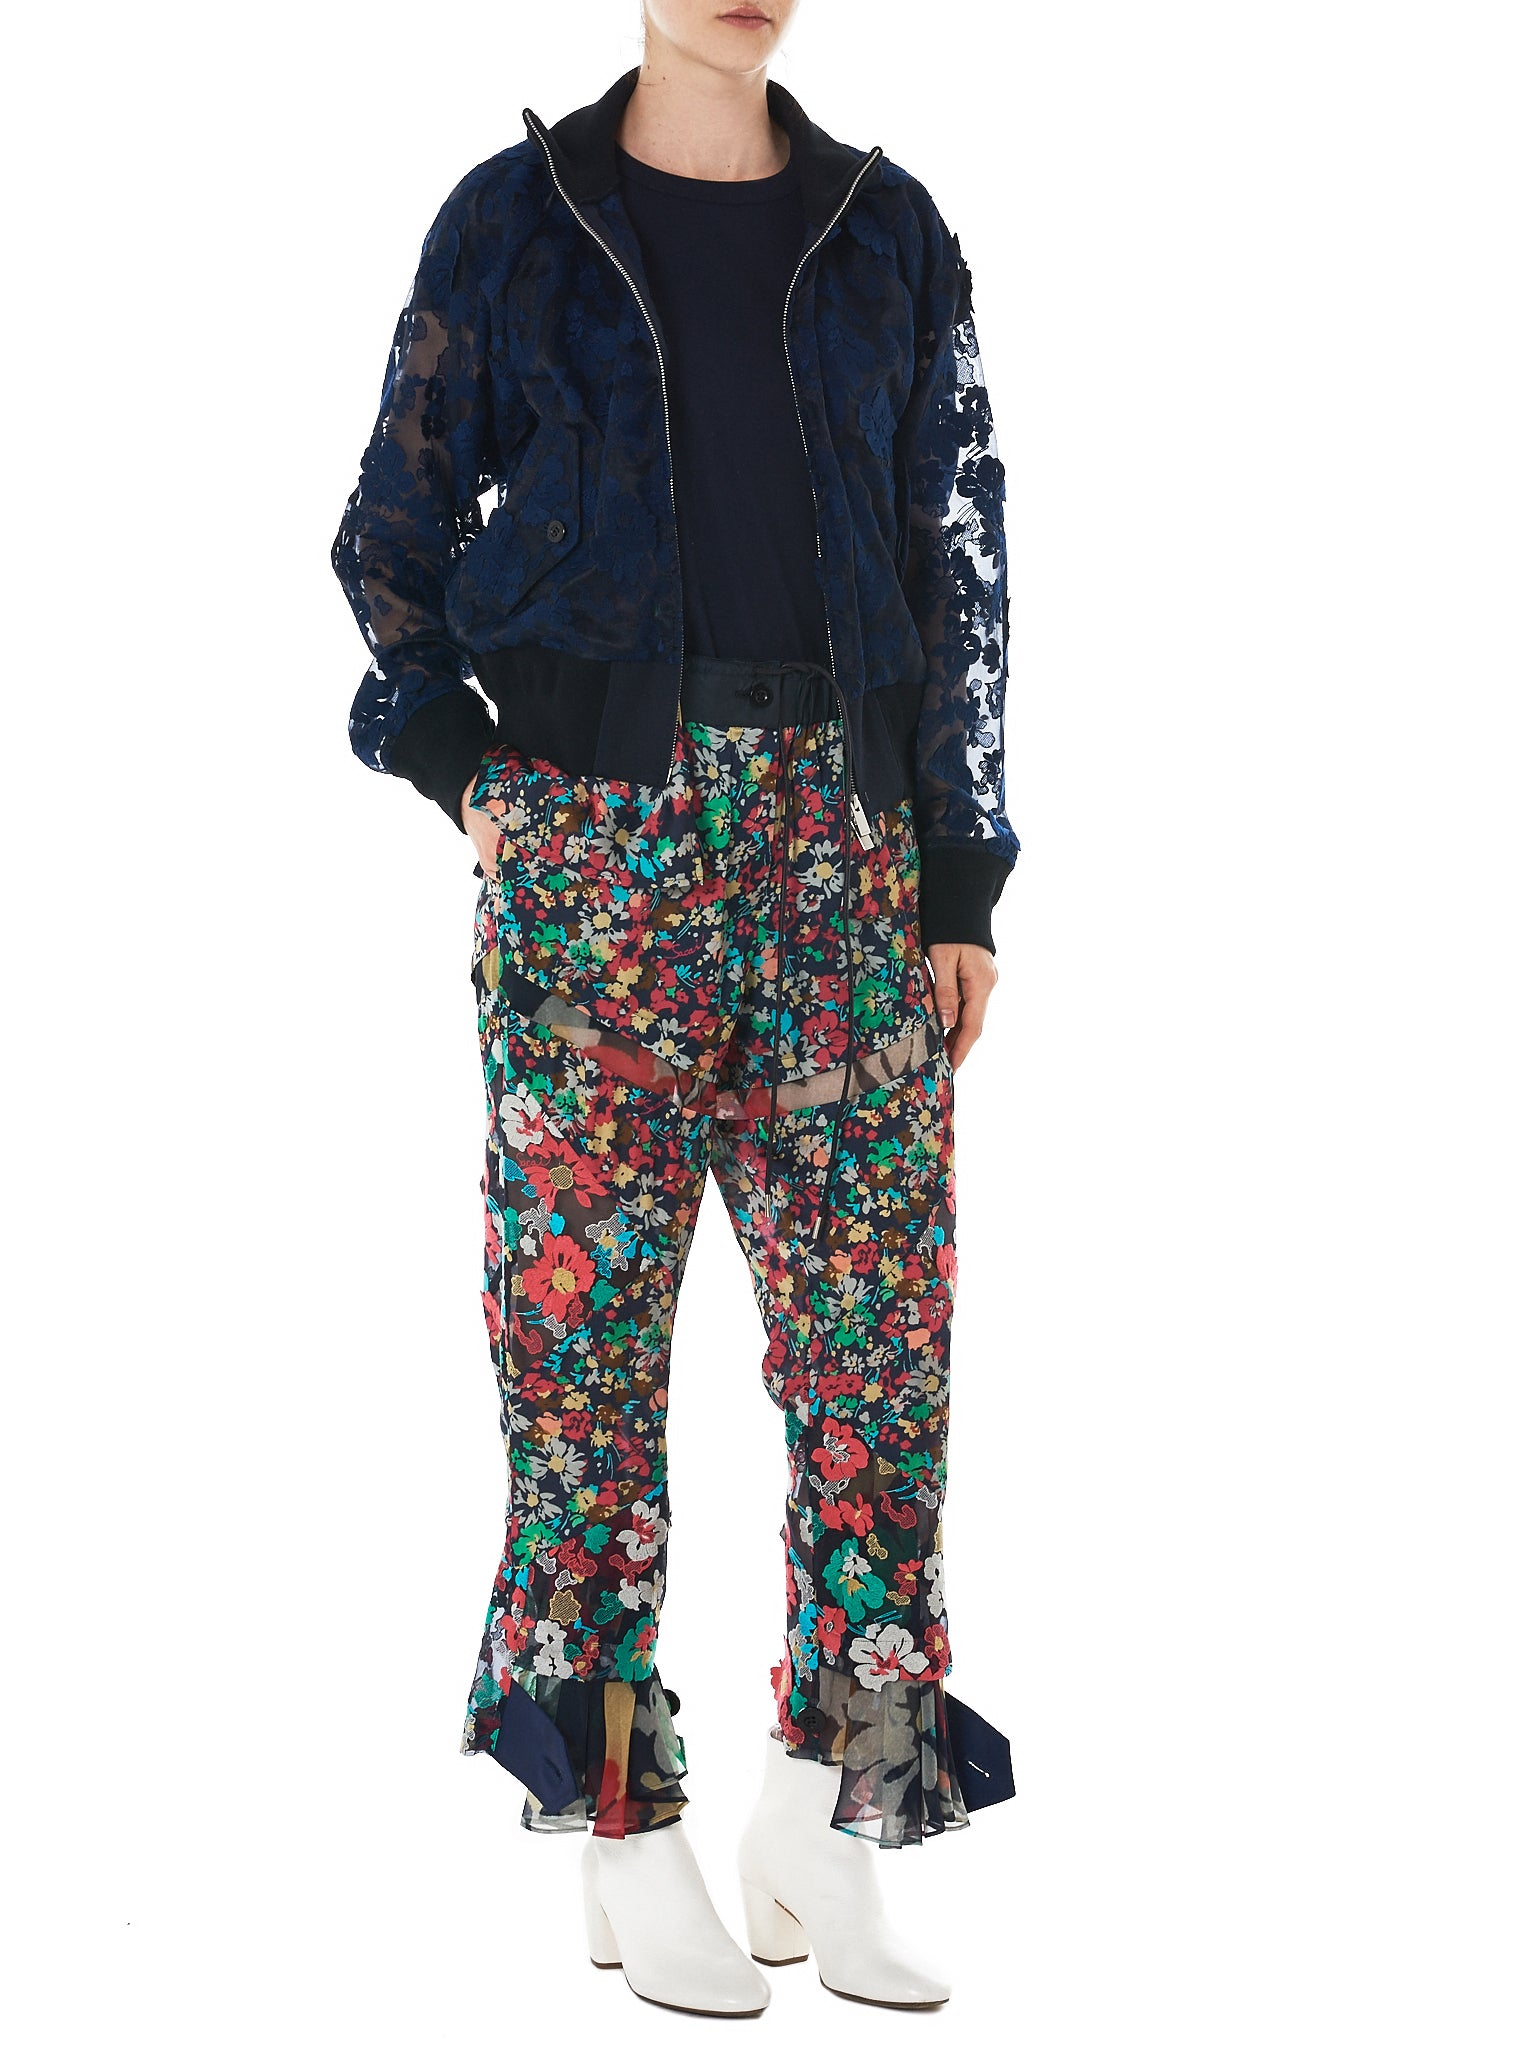 Sacai Floral Trousers - Hlorenzo Style